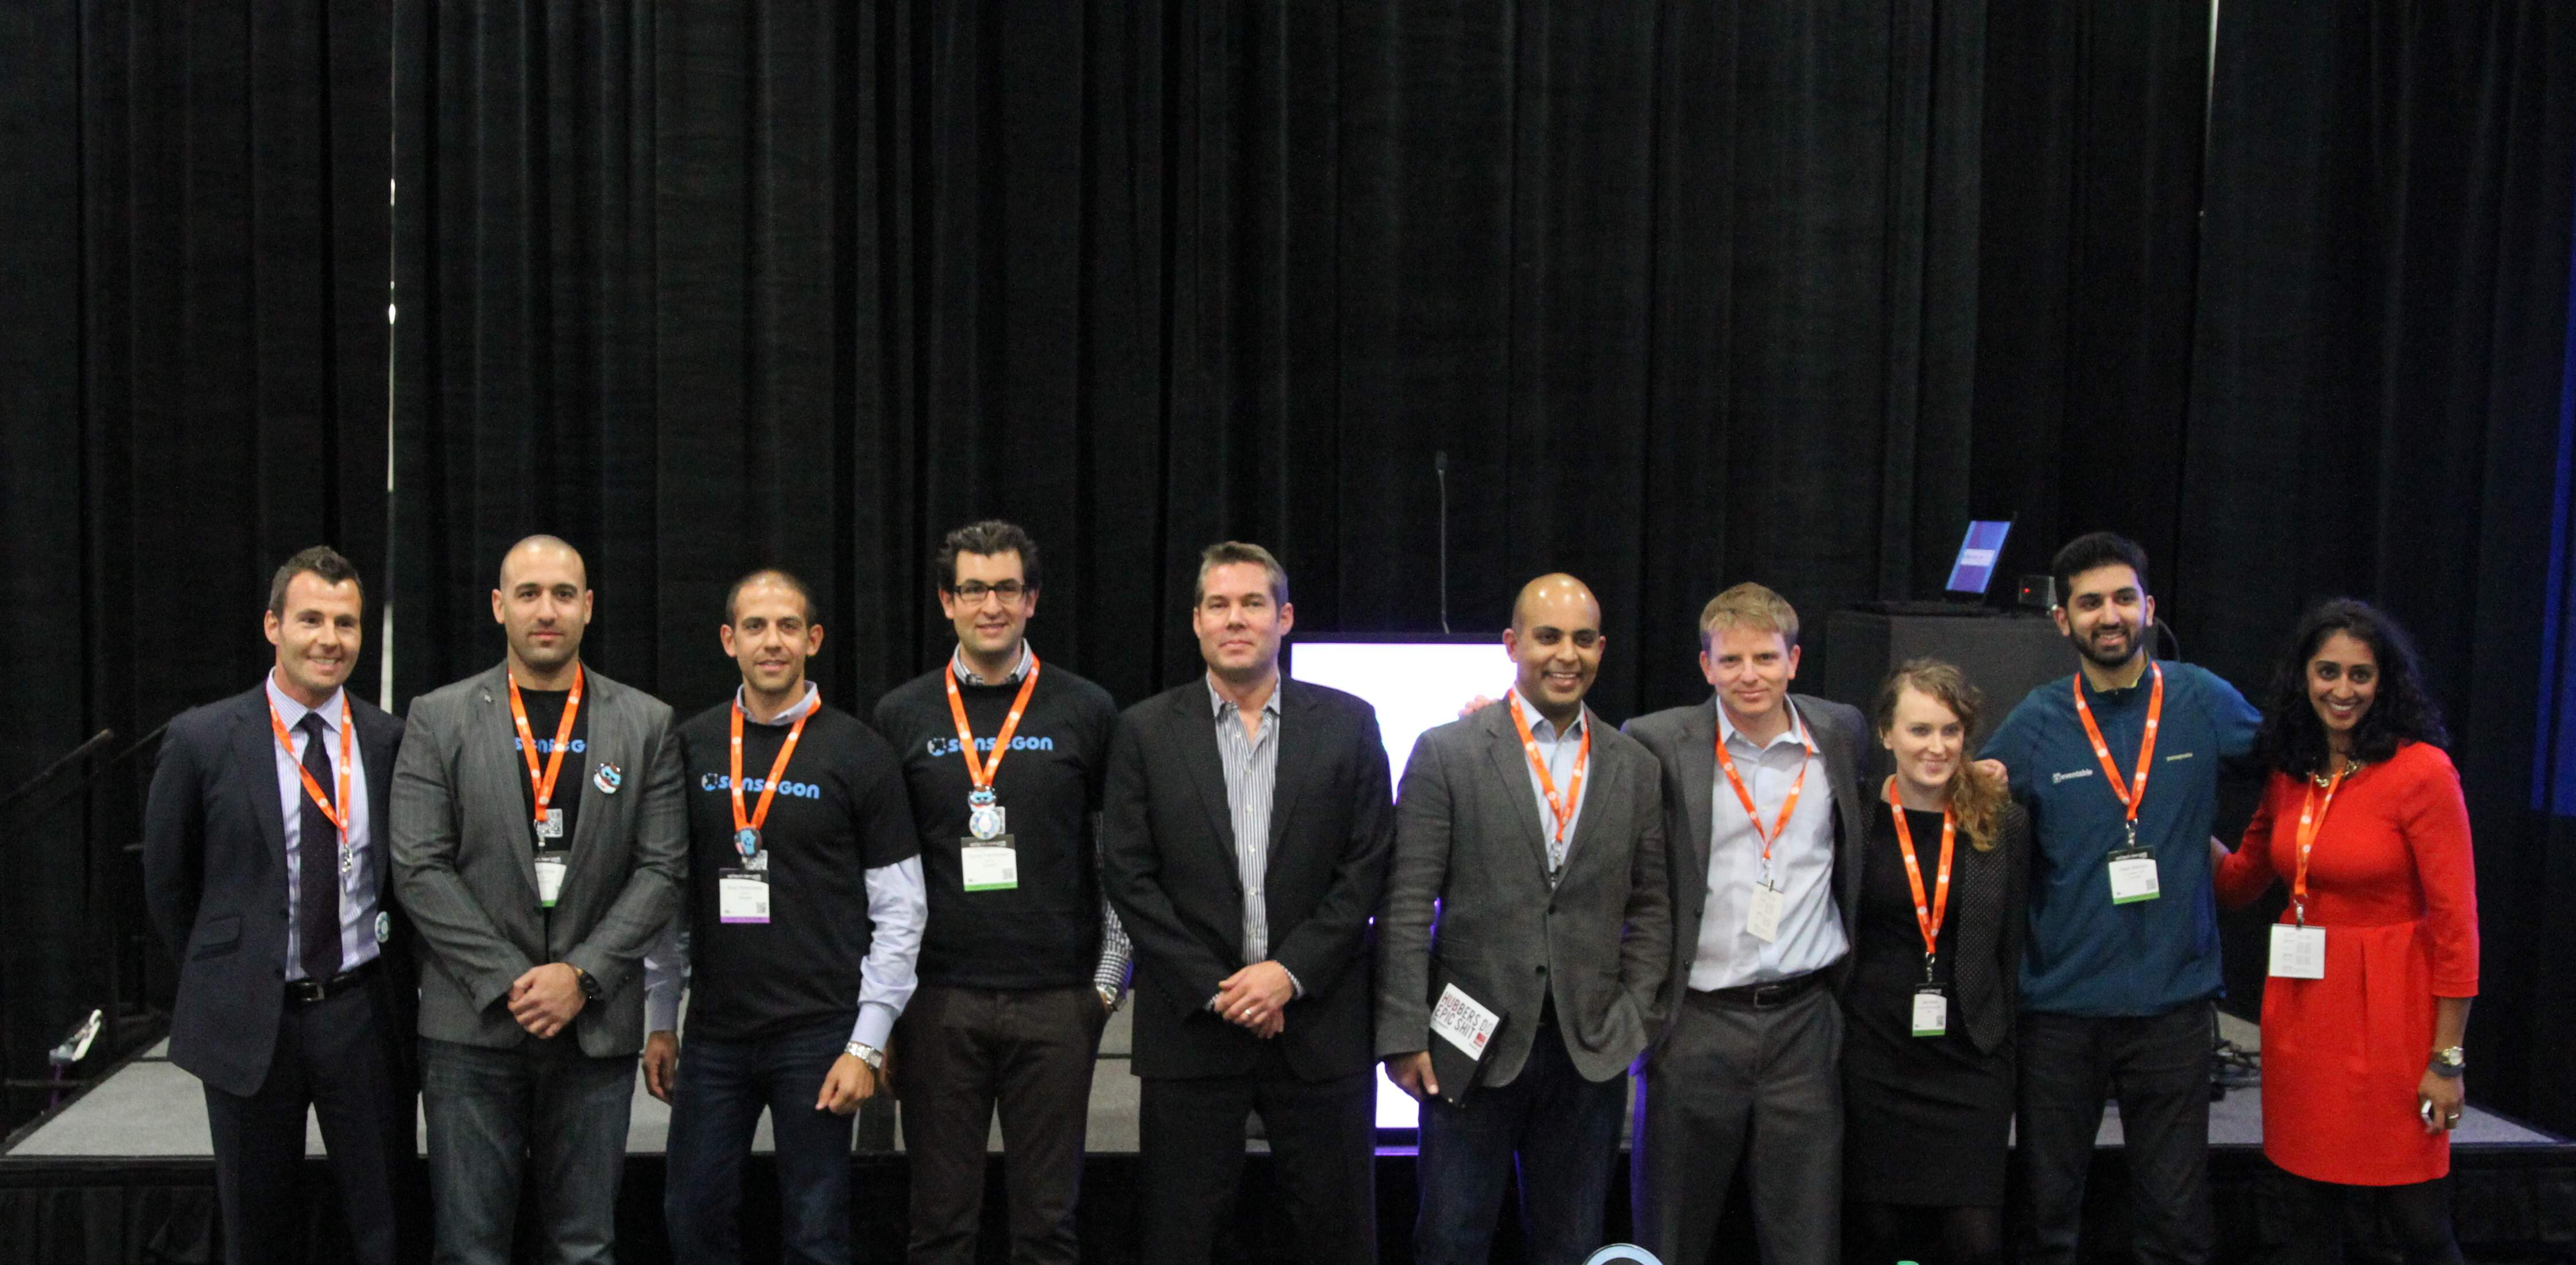 Finalists in the Startup Spotlight Series pose for a photo as judges from MasterCard deliberate.